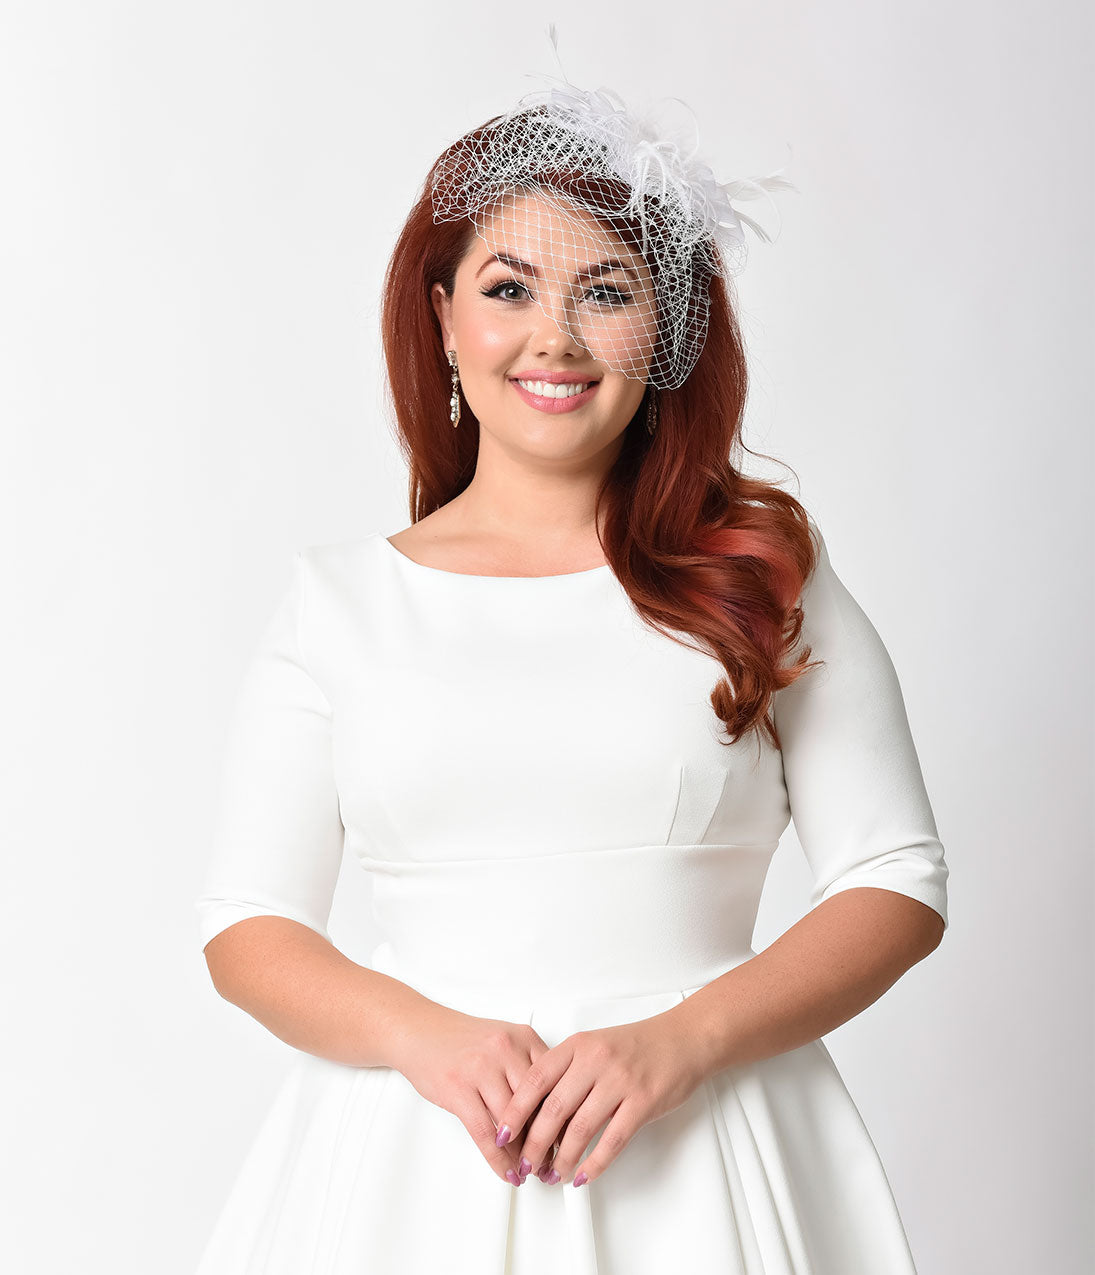 Women's Vintage Hats | Old Fashioned Hats | Retro Hats White Net  Feather Bow Hair Clip Bridal Fascinator $28.00 AT vintagedancer.com